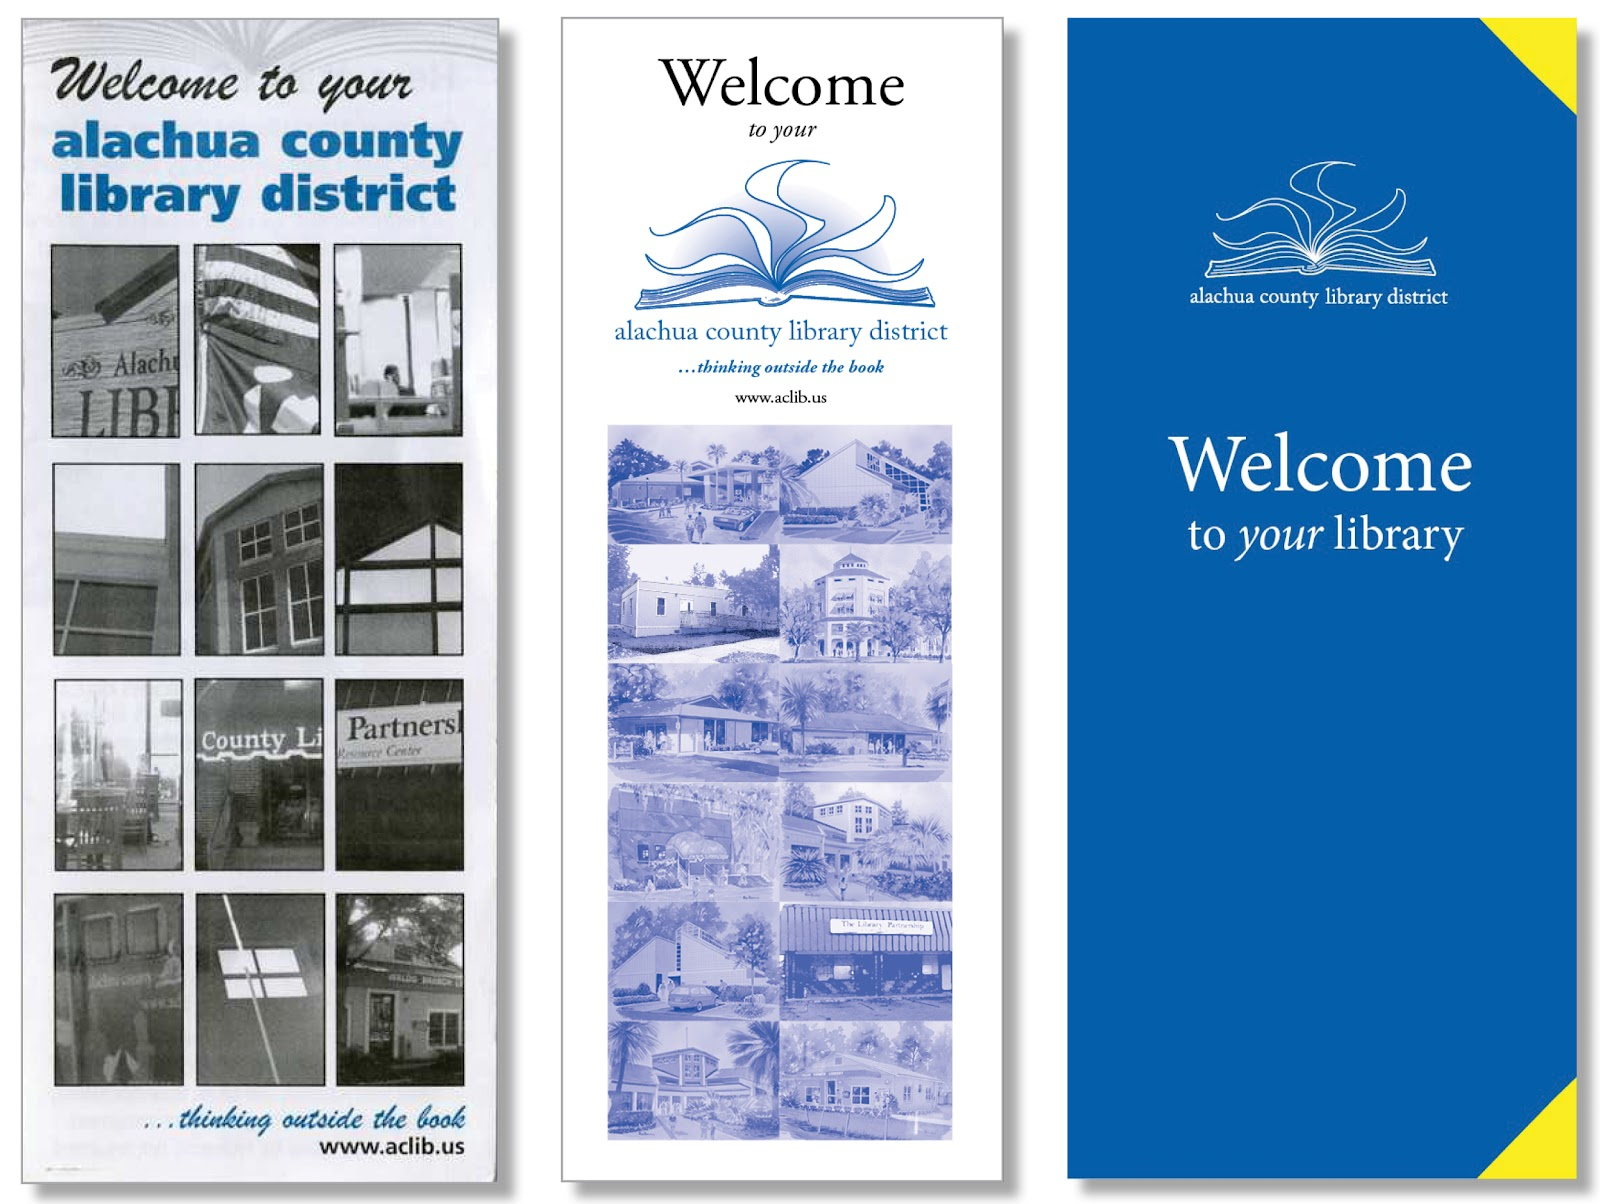 Library Welcome Brochure